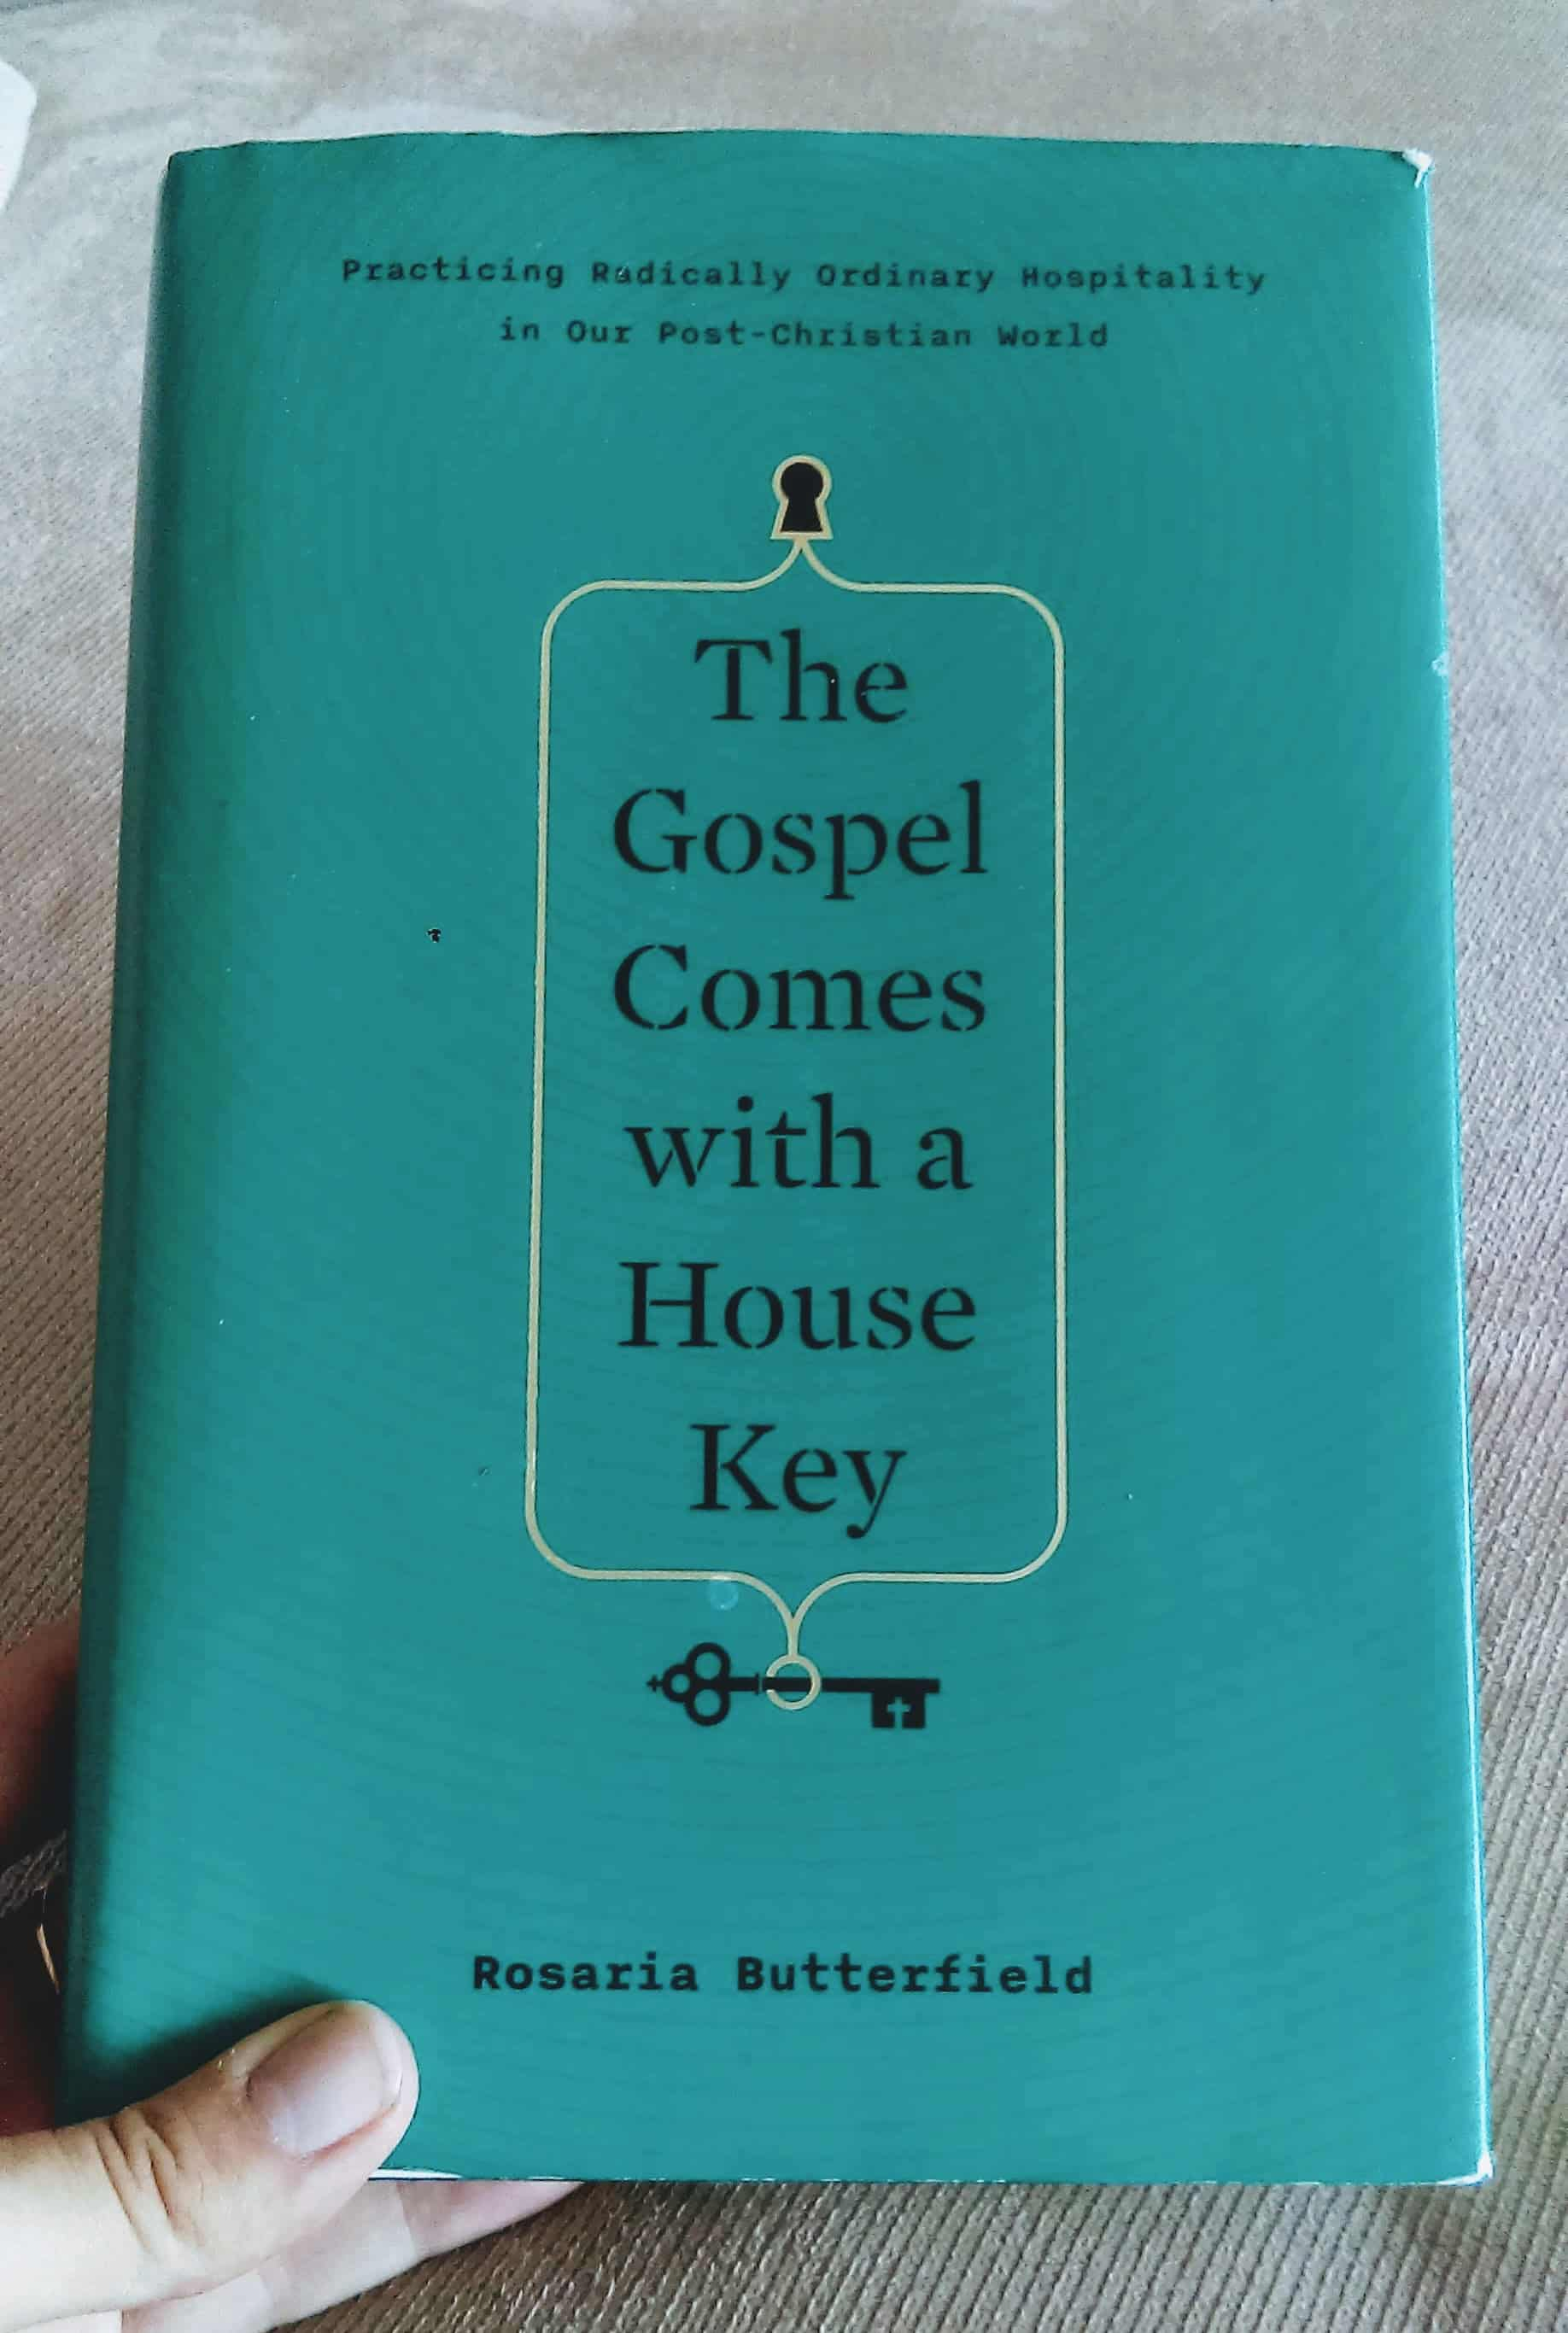 The Gospel Comes with a House Key: A Book Review